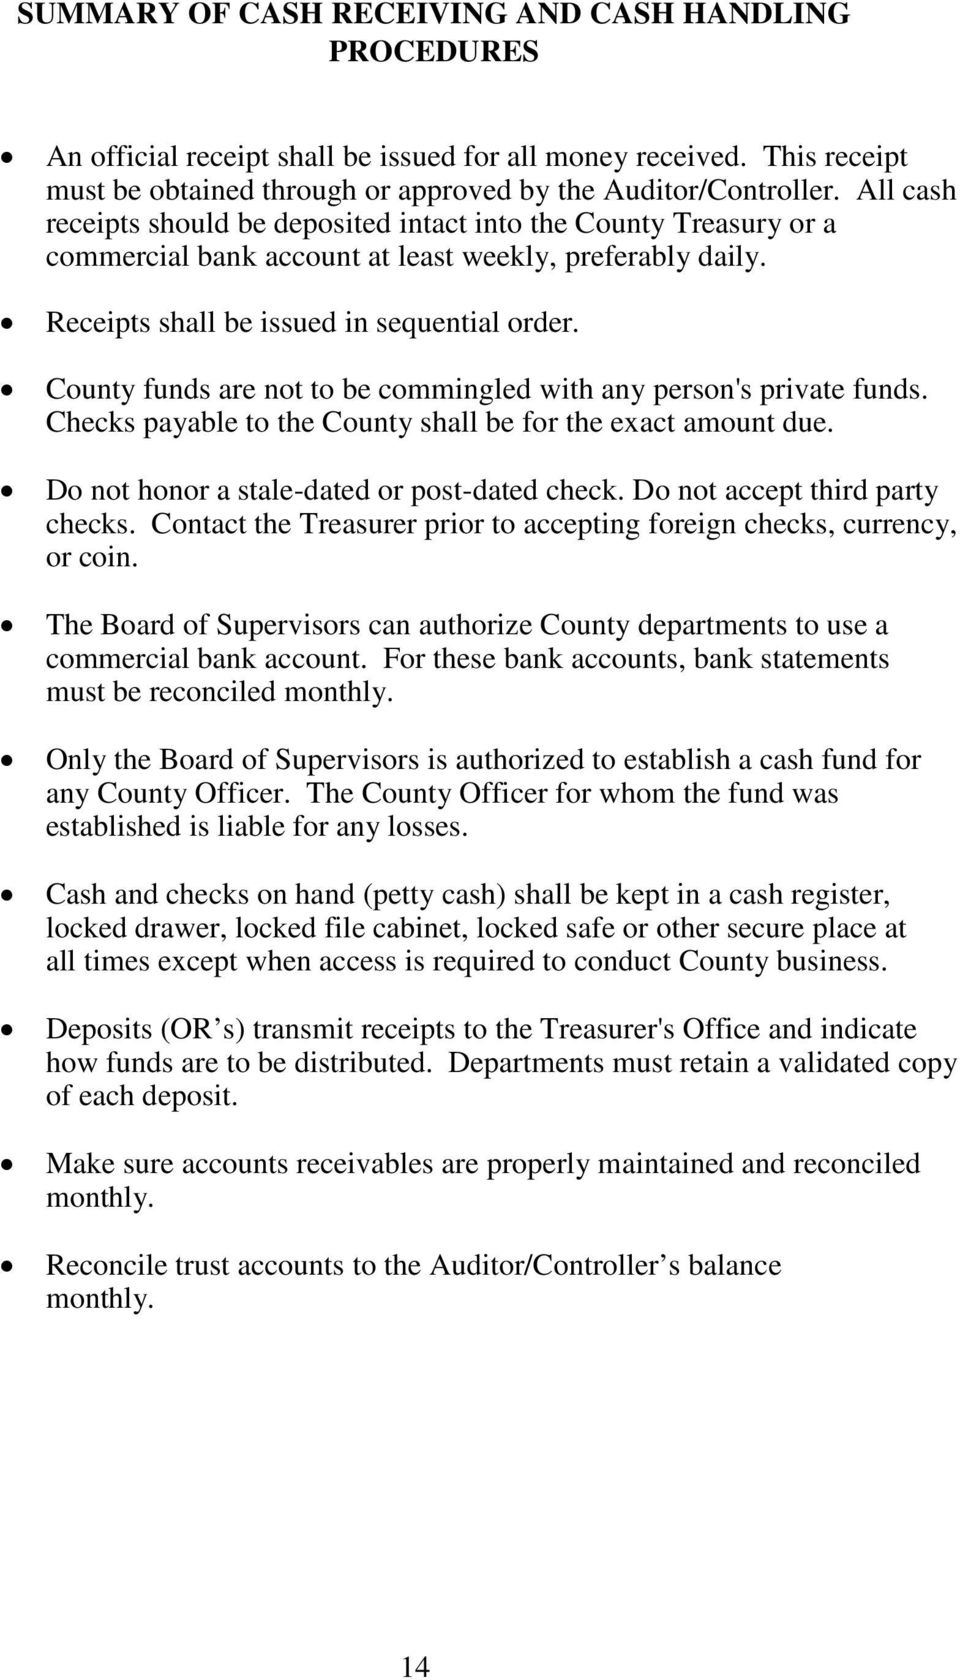 County funds are not to be commingled with any person's private funds. Checks payable to the County shall be for the exact amount due. Do not honor a stale-dated or post-dated check.